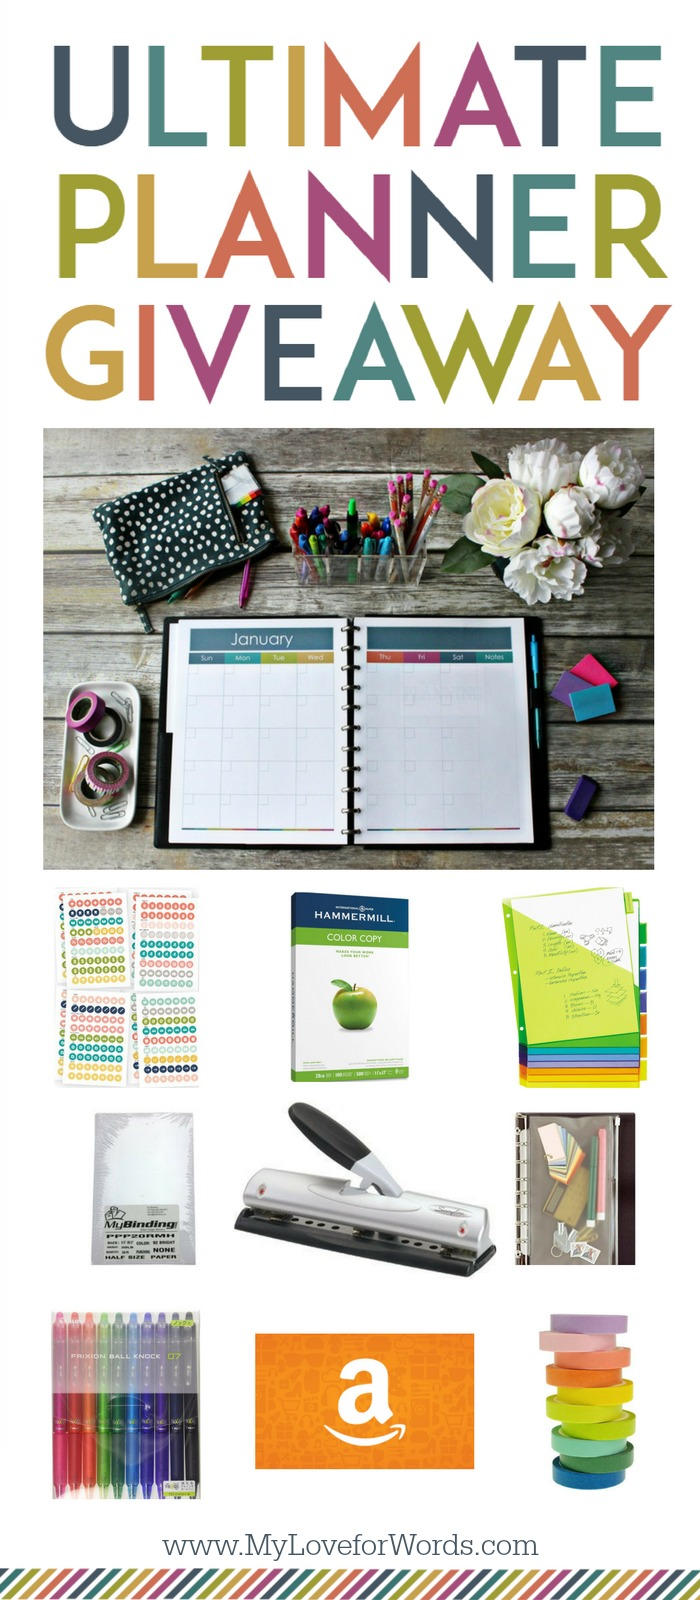 AWESOME GIVEAWAY to make 2017 your most organized year yet!! Beautiful printable planner in both A5 AND Letter sizes so you can organize your calendars, time, finances, meal planning, cleaning, organizing, passwords, goals, and more!! You'll also win an adjustable hole punch, planner stickers, ream of premium paper, organizing pouch, frixion erasable pens, tons of colorful washi tape, and a $25 Amazon giftcard to buy the perfect binders of your choice. Enter before November 29, 2016 for your chance to win!